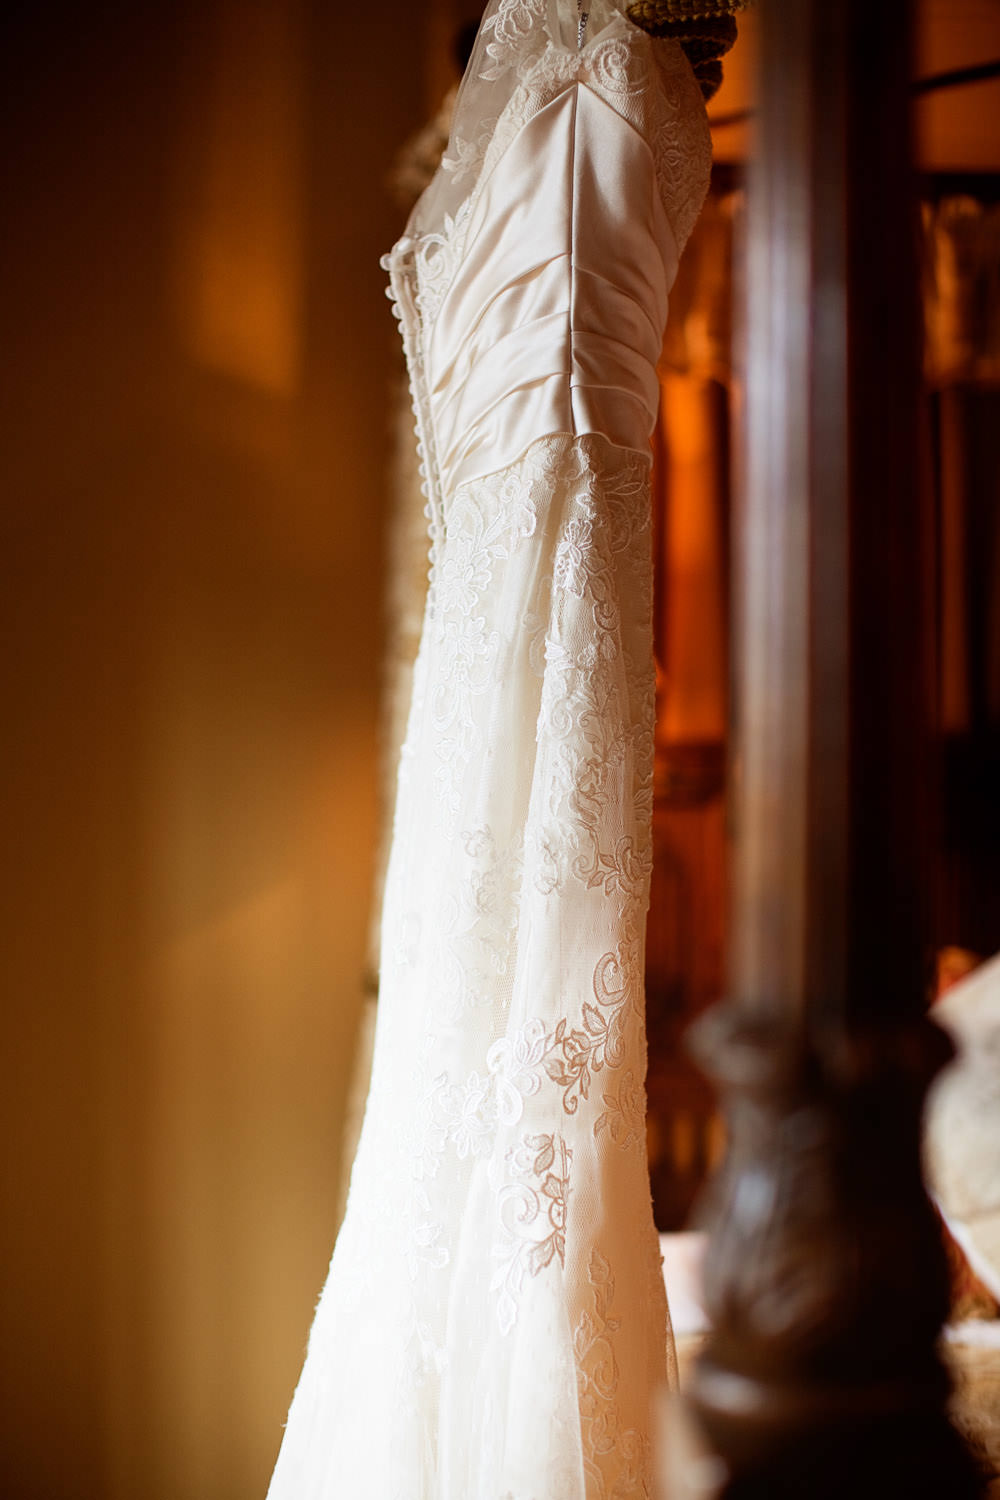 Wedding dress details at a Haslington Hall wedding